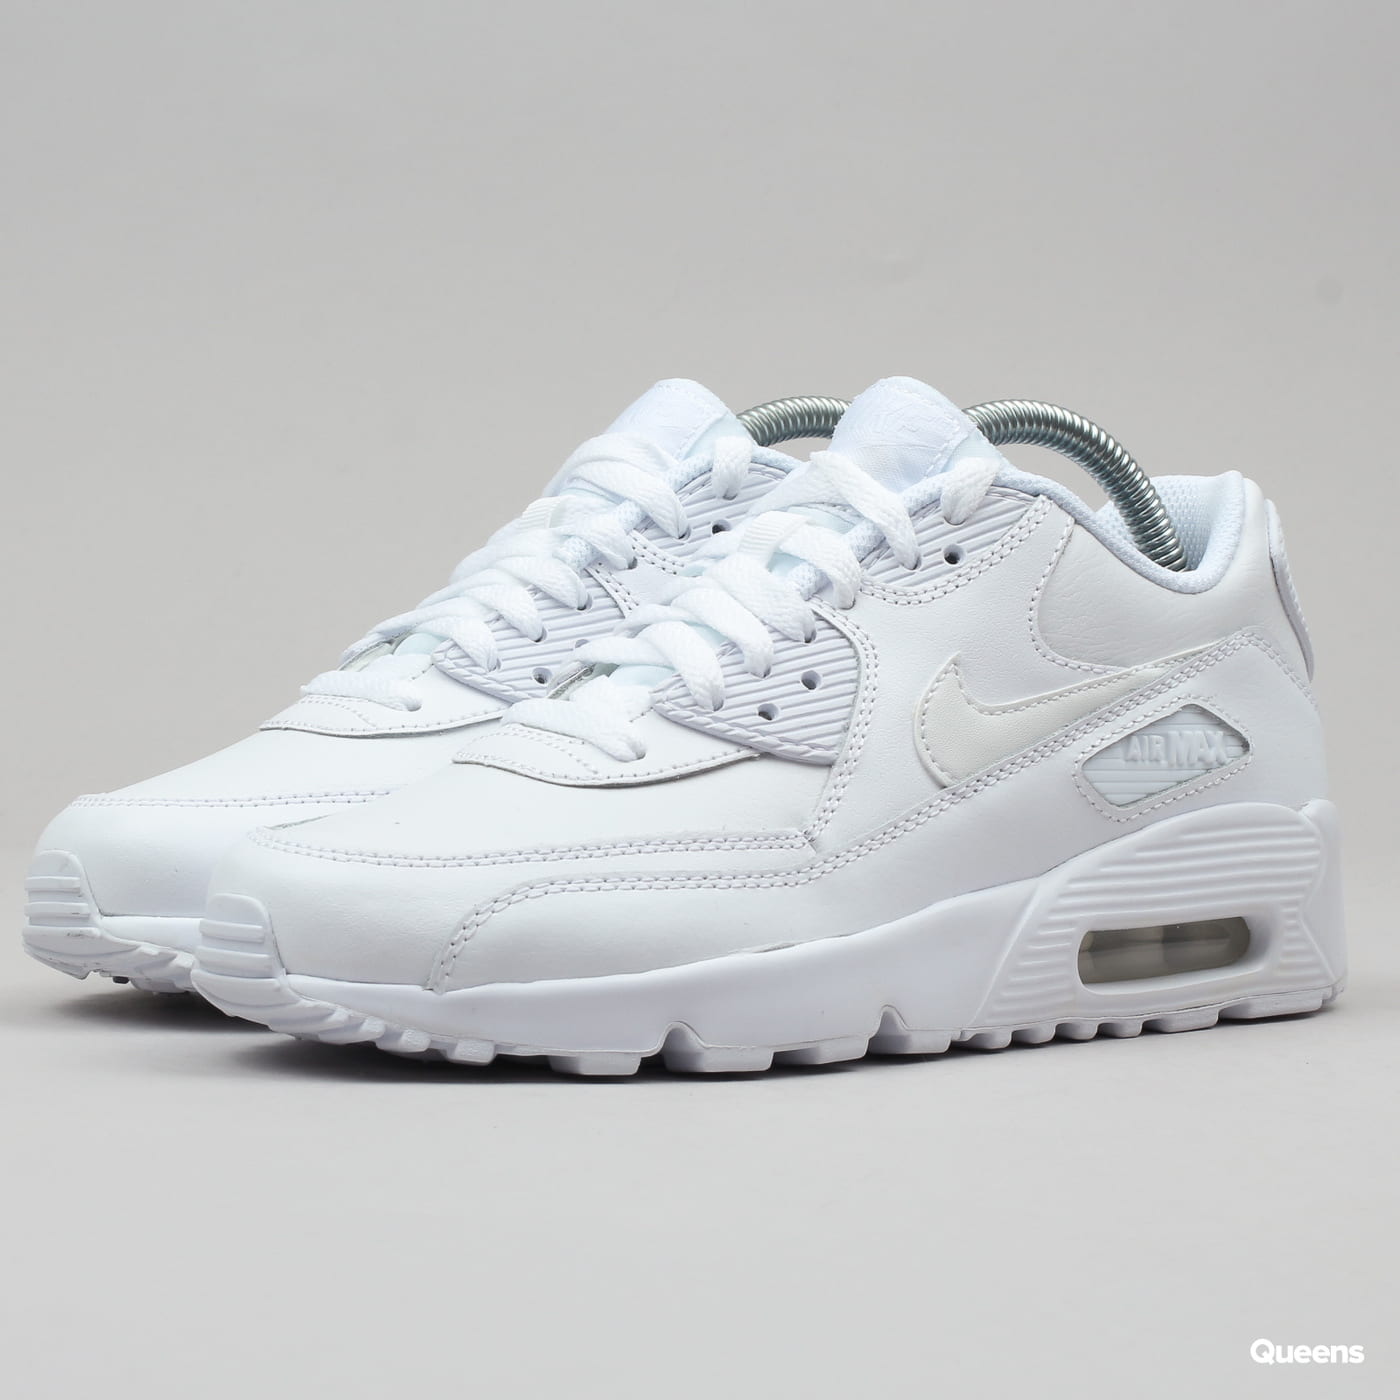 Nike Air Max 90 Leather GS Wit 833412 100 | Kicksshop.nl